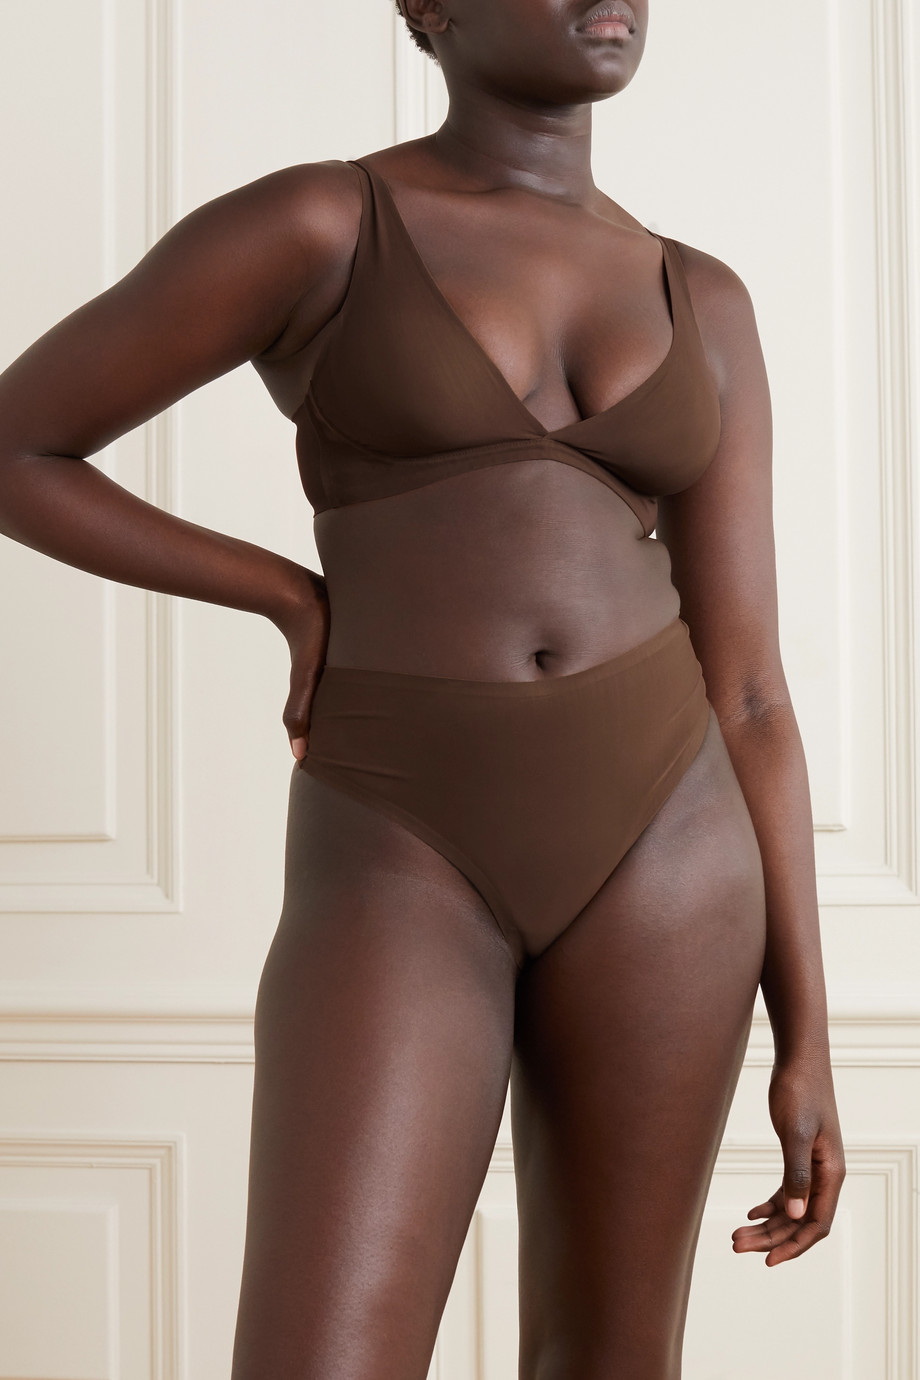 SKIMS Naked High Waisted thong - Smokey Quartz